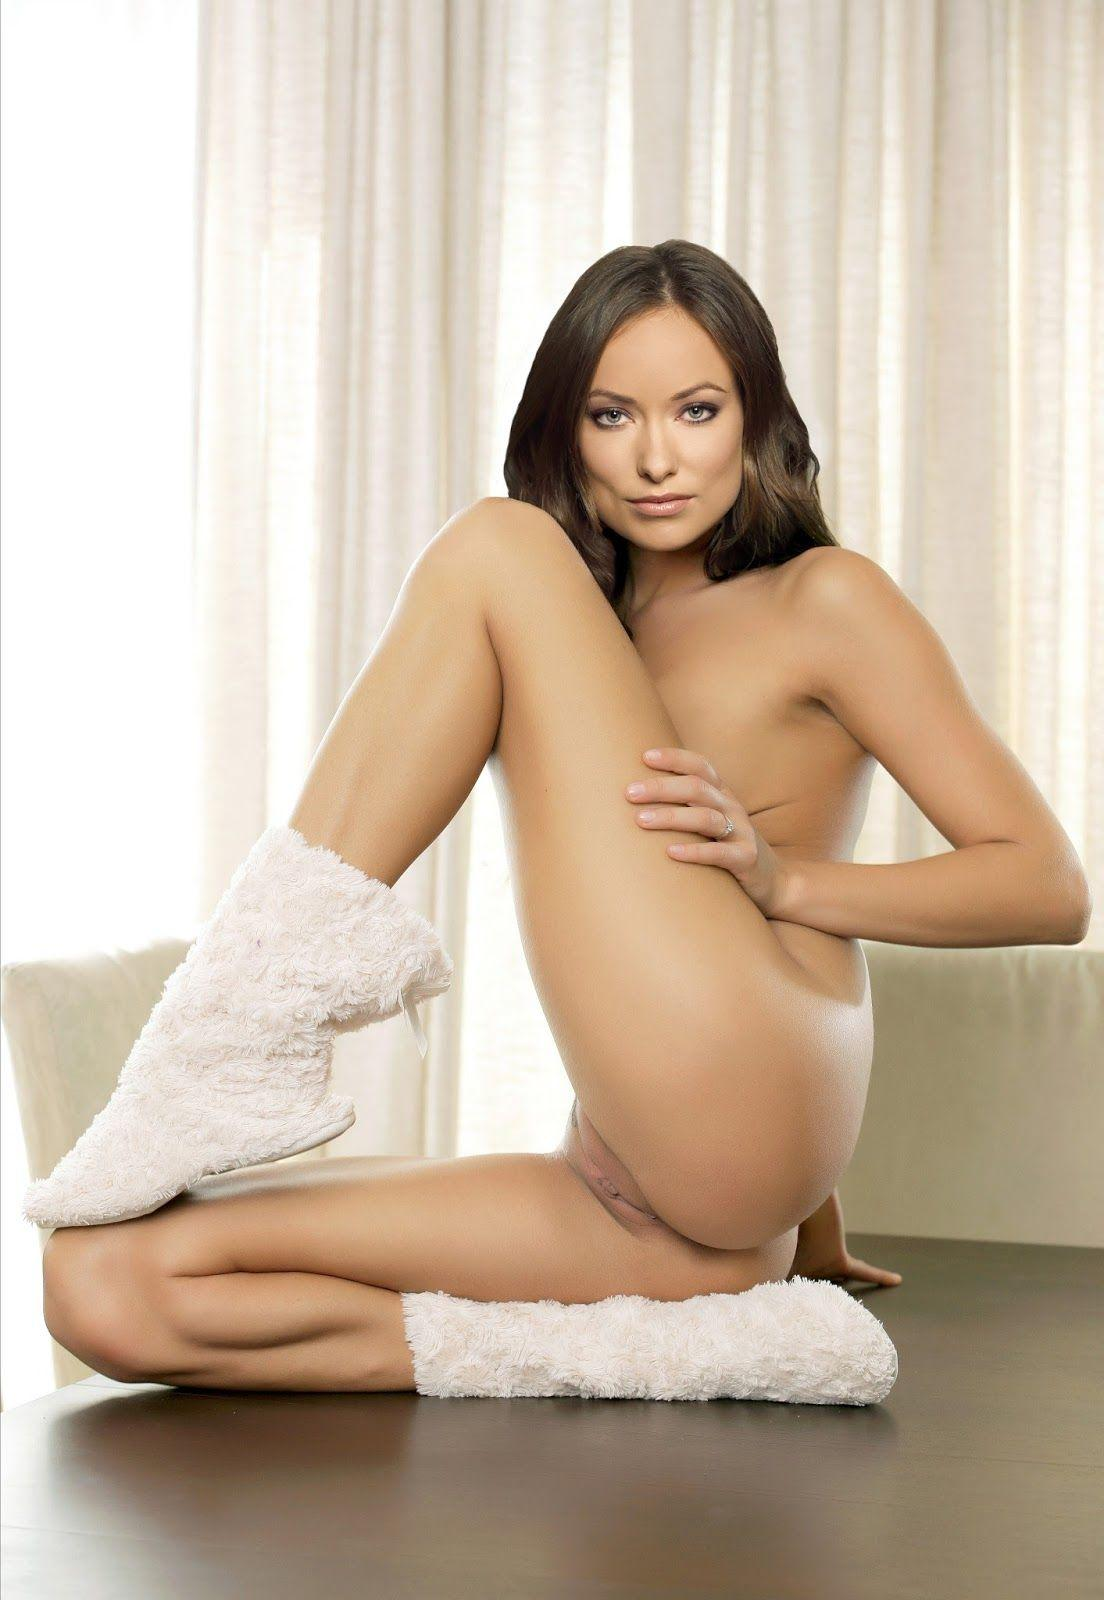 Yet the best olivia wilde nude question